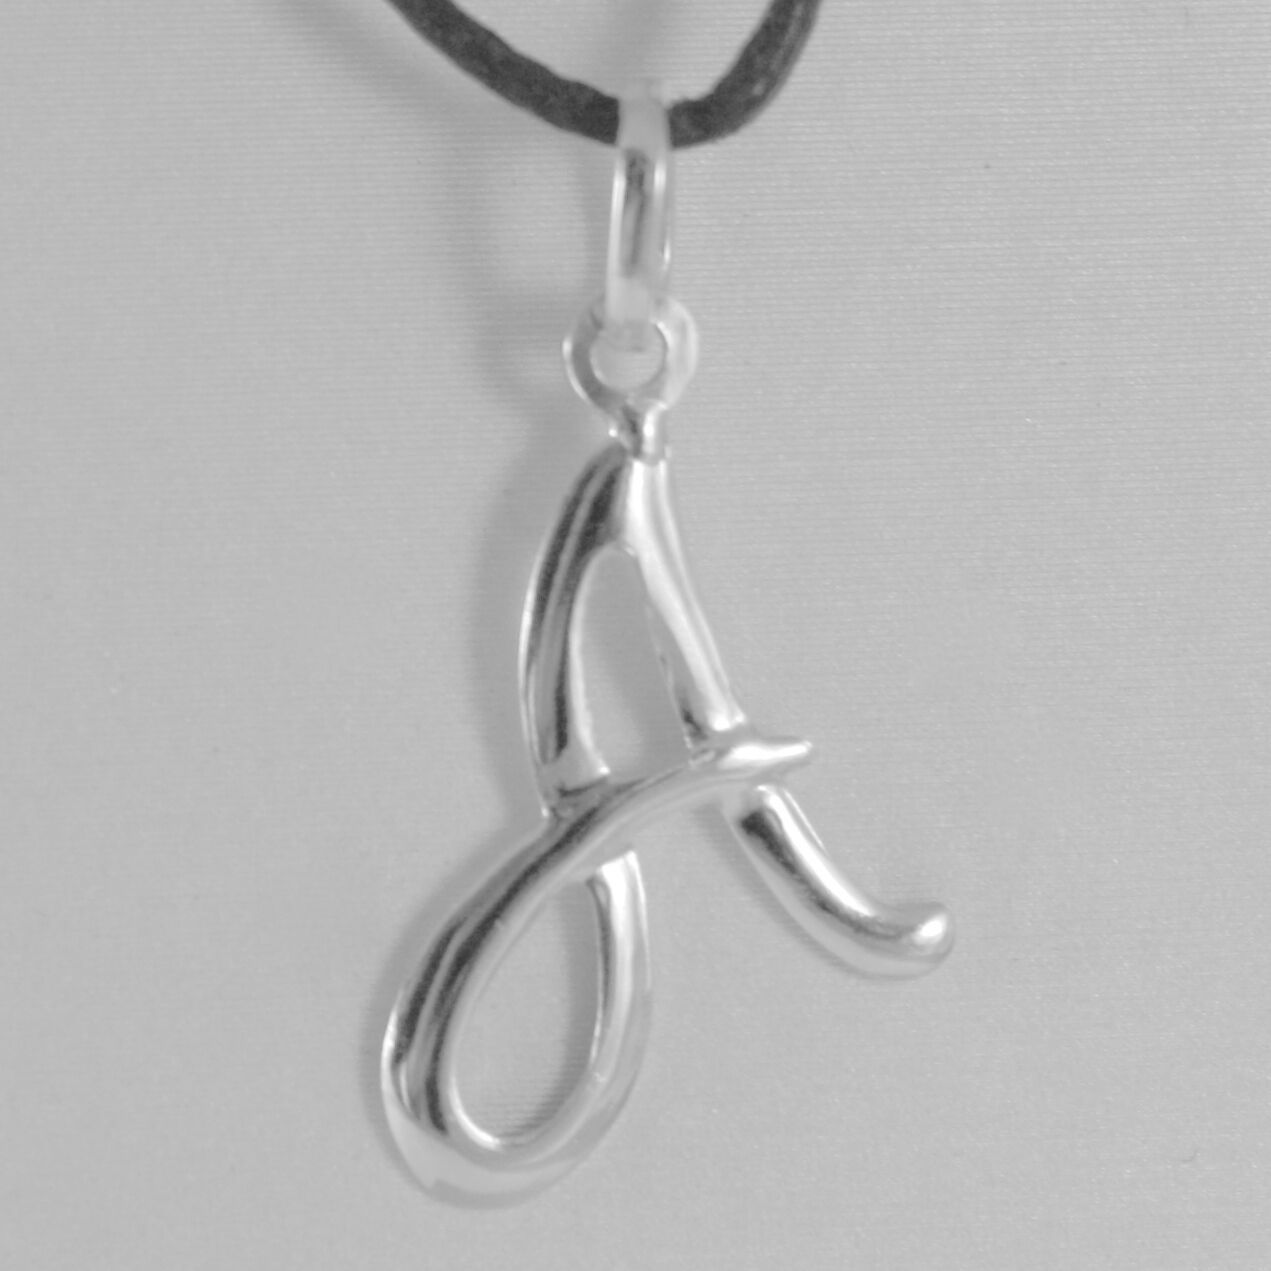 18K WHITE GOLD PENDANT CHARM INITIAL LETTER A, MADE IN ITALY 1.0 INCHES, 25 MM